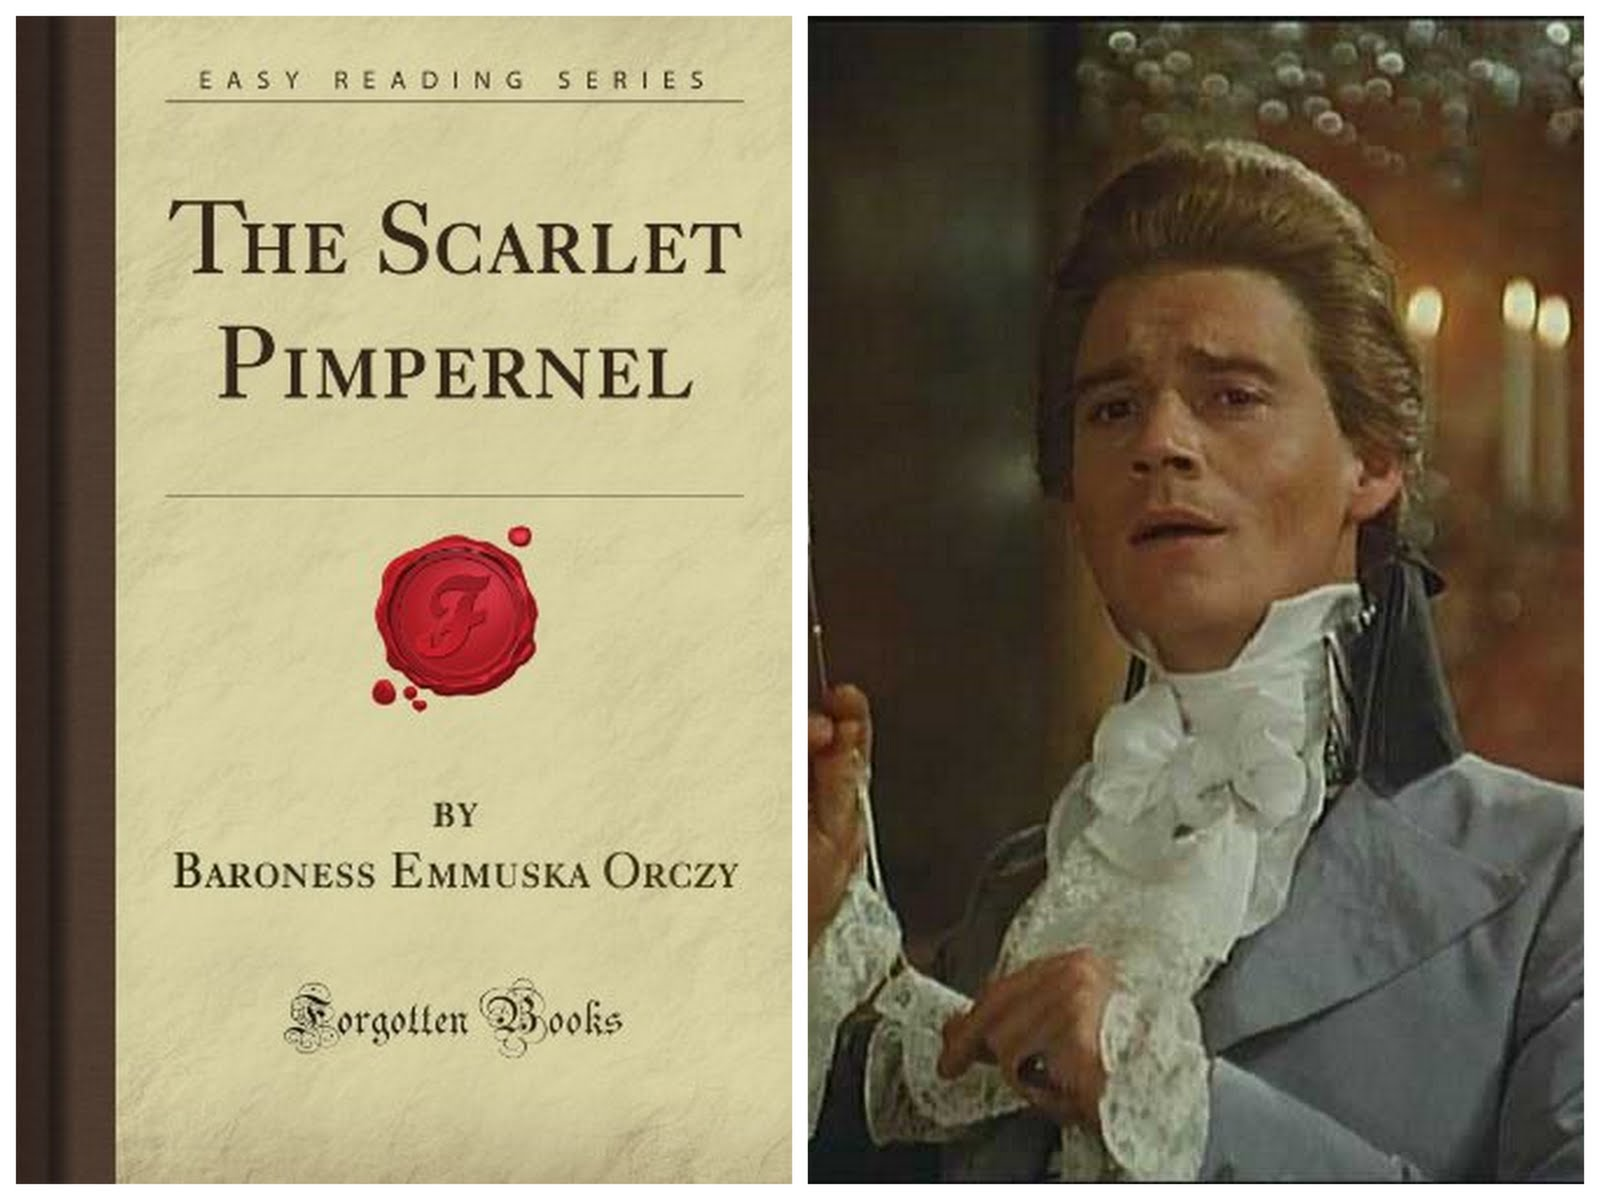 SET of 10 Scarlet Pimpernel Books by Baroness Orczy